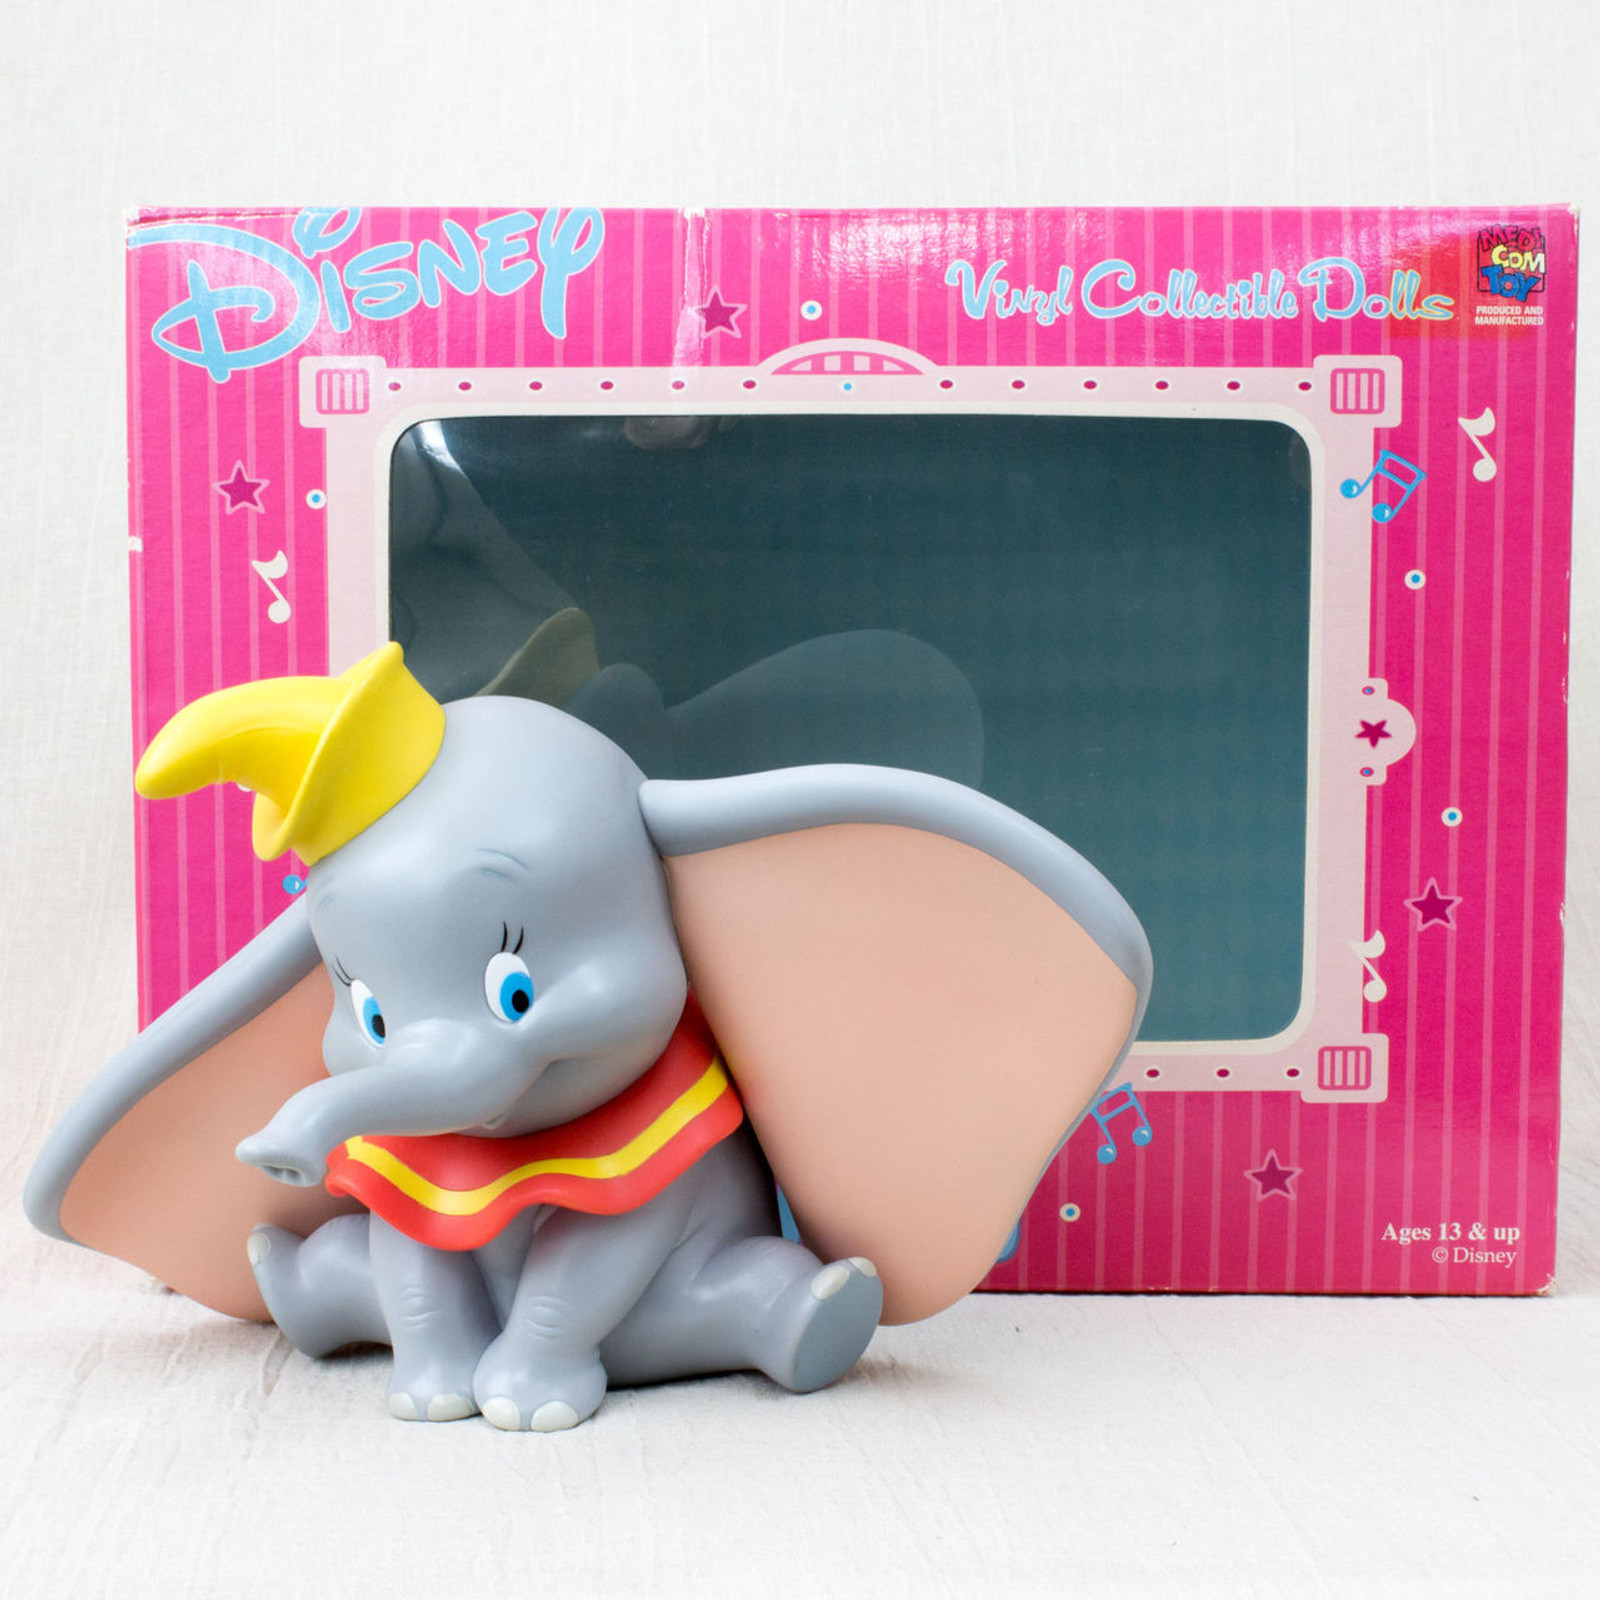 Disney Dumbo Vinyl Collectible Dolls Figure VCD Medicom Toy JAPAN ANIME